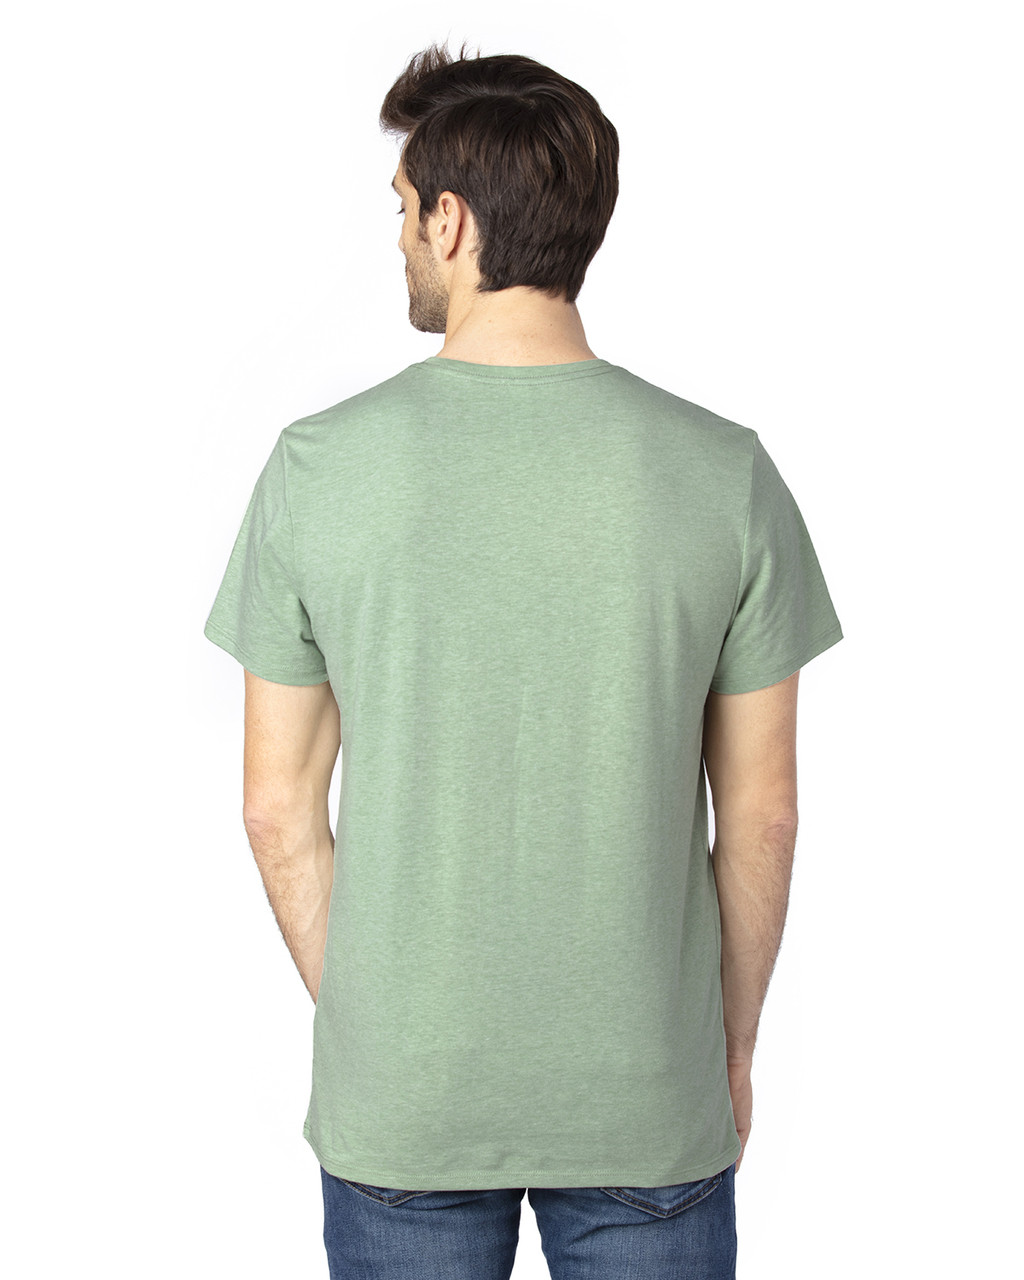 Army Heather - Back, 100A Threadfast Unisex Ultimate Short-Sleeve T-Shirt | BlankClothing.ca